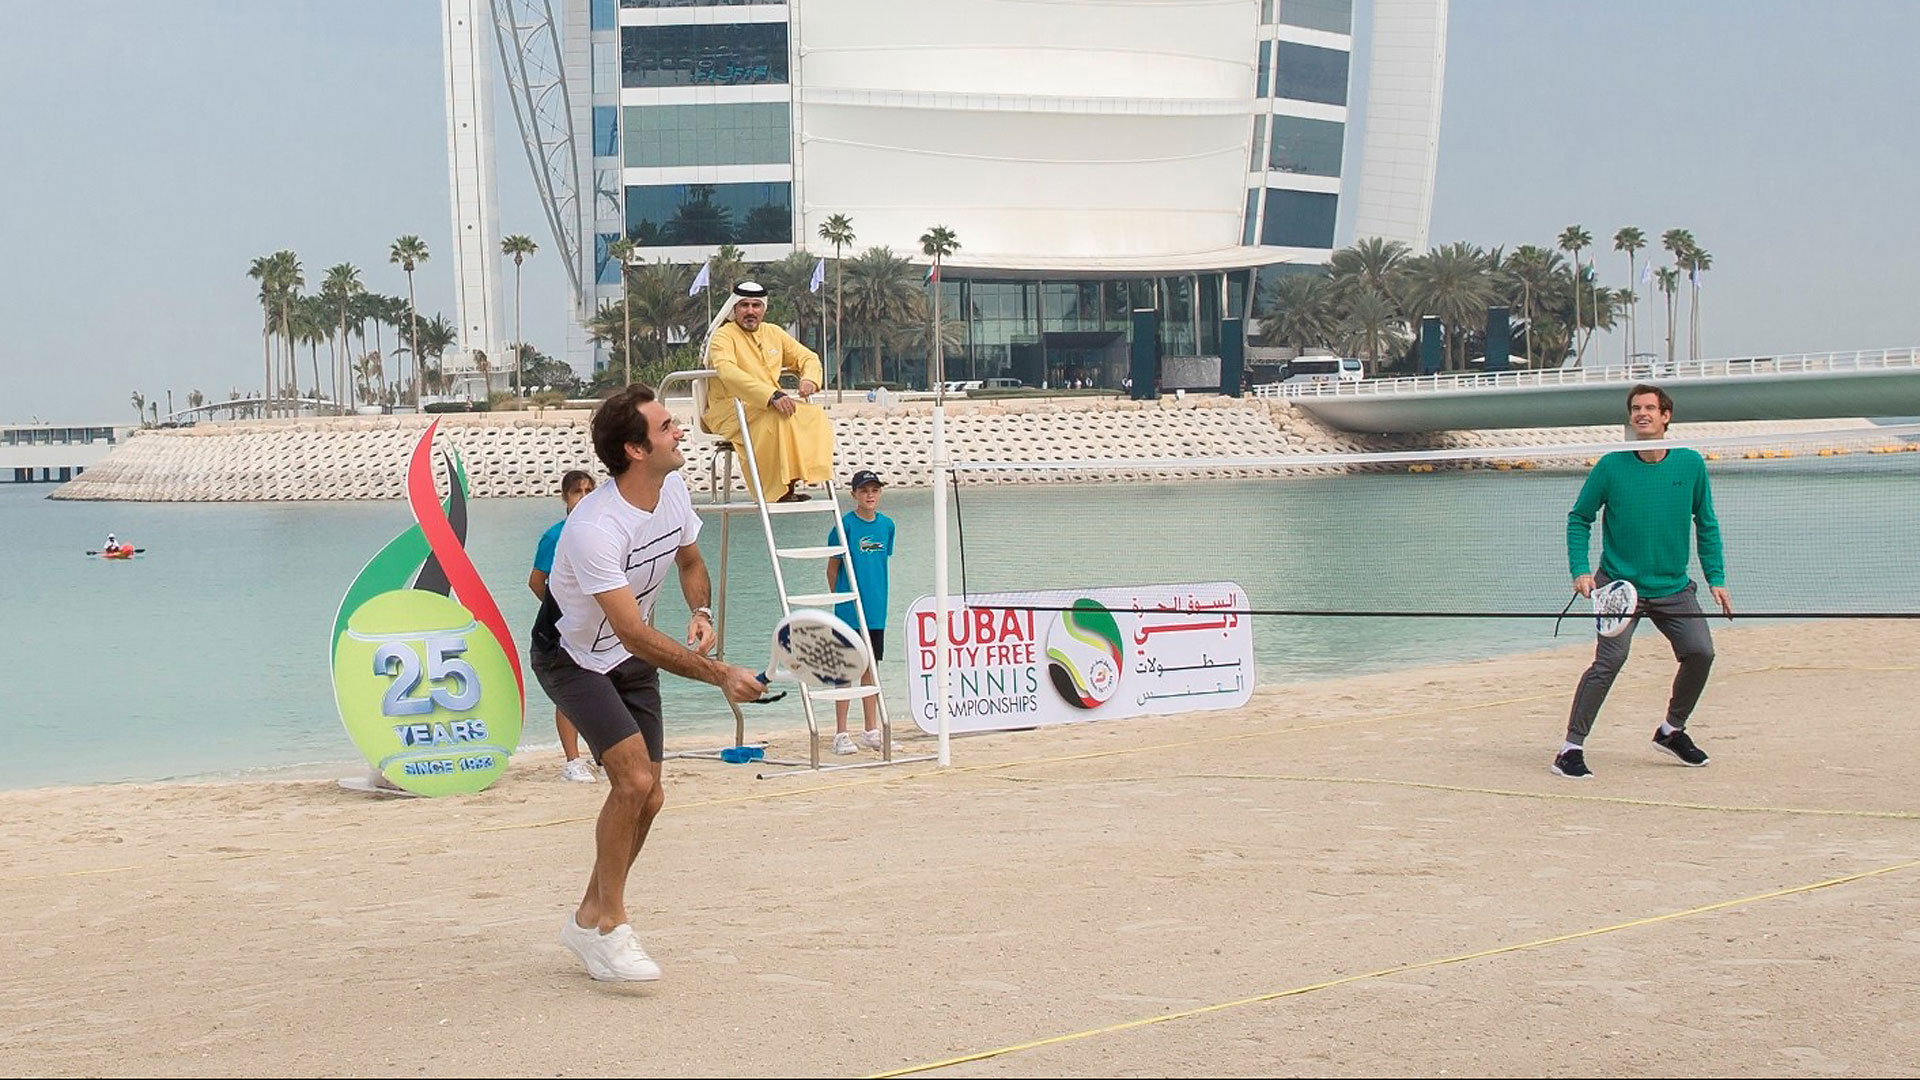 Andy Murray   Overview   ATP World Tour   Tennis Roger Federer and Andy Murray take part in a beach tennis match in front of the iconic Burj Al Arab at the Jumeirah Al Naseem hotel